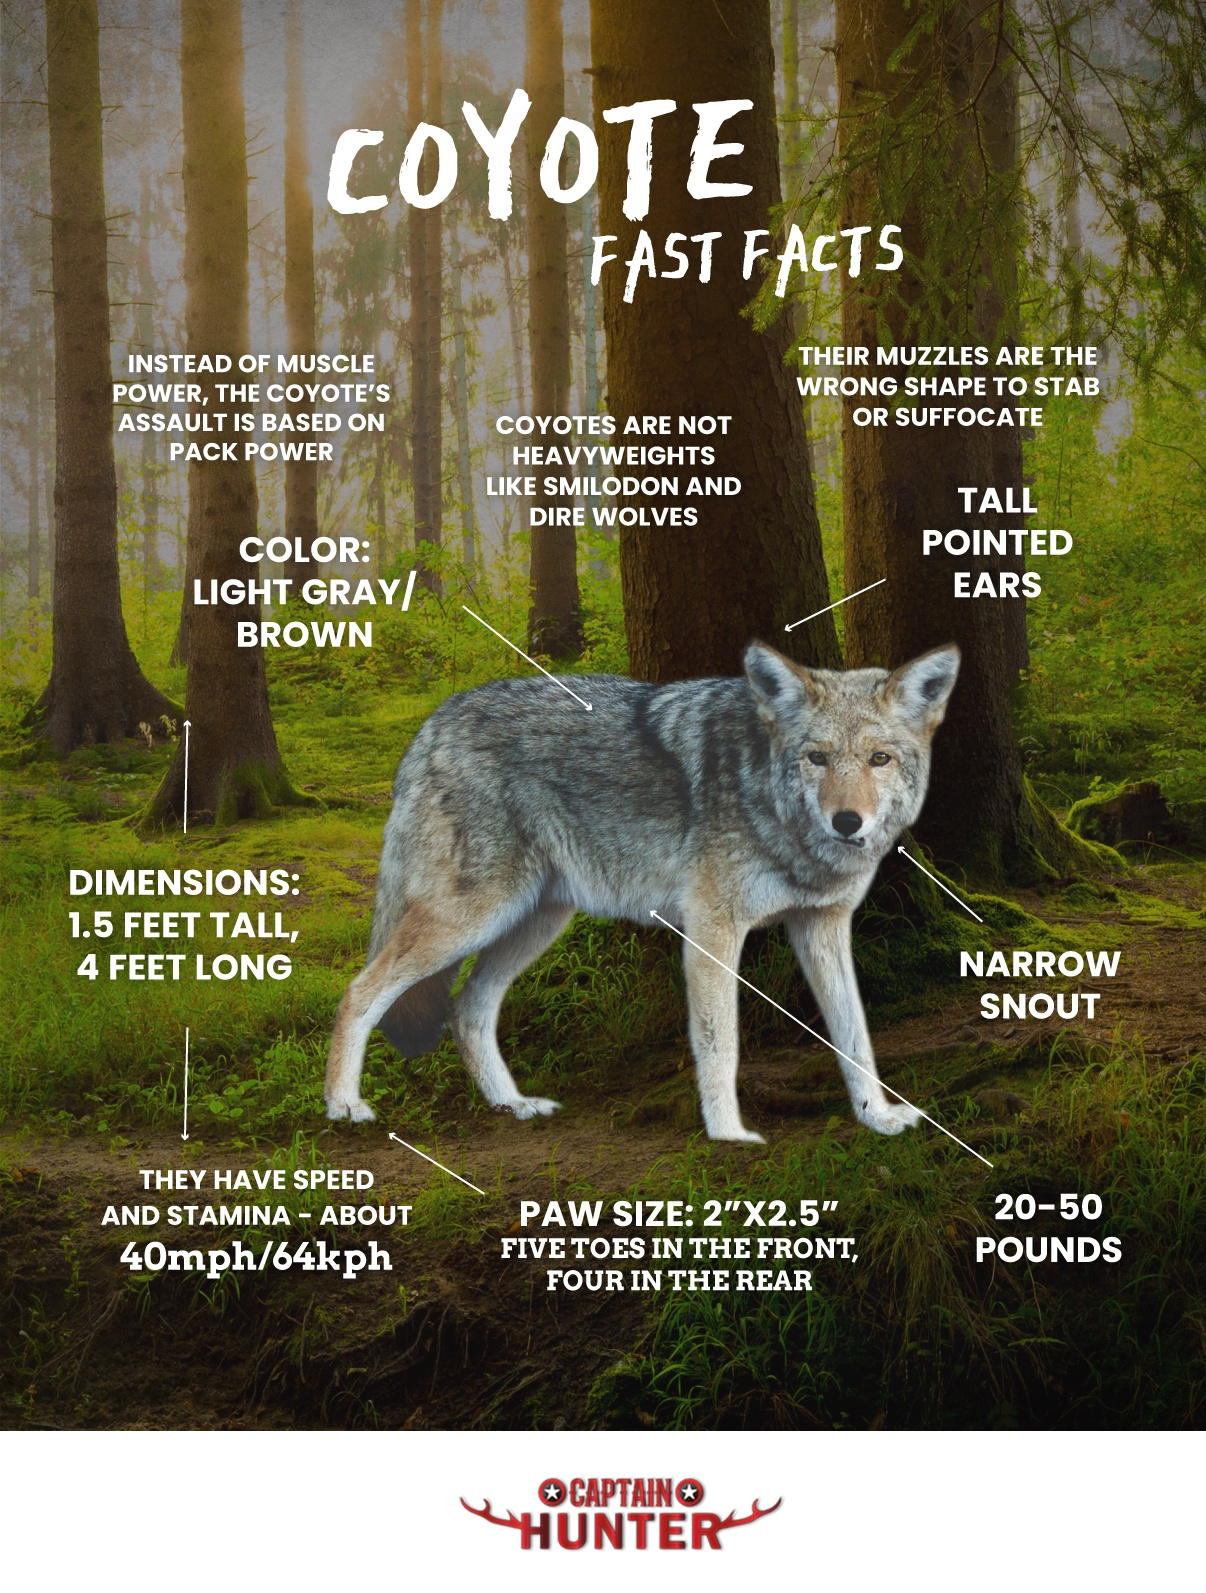 coyote-fast-facts-infographic